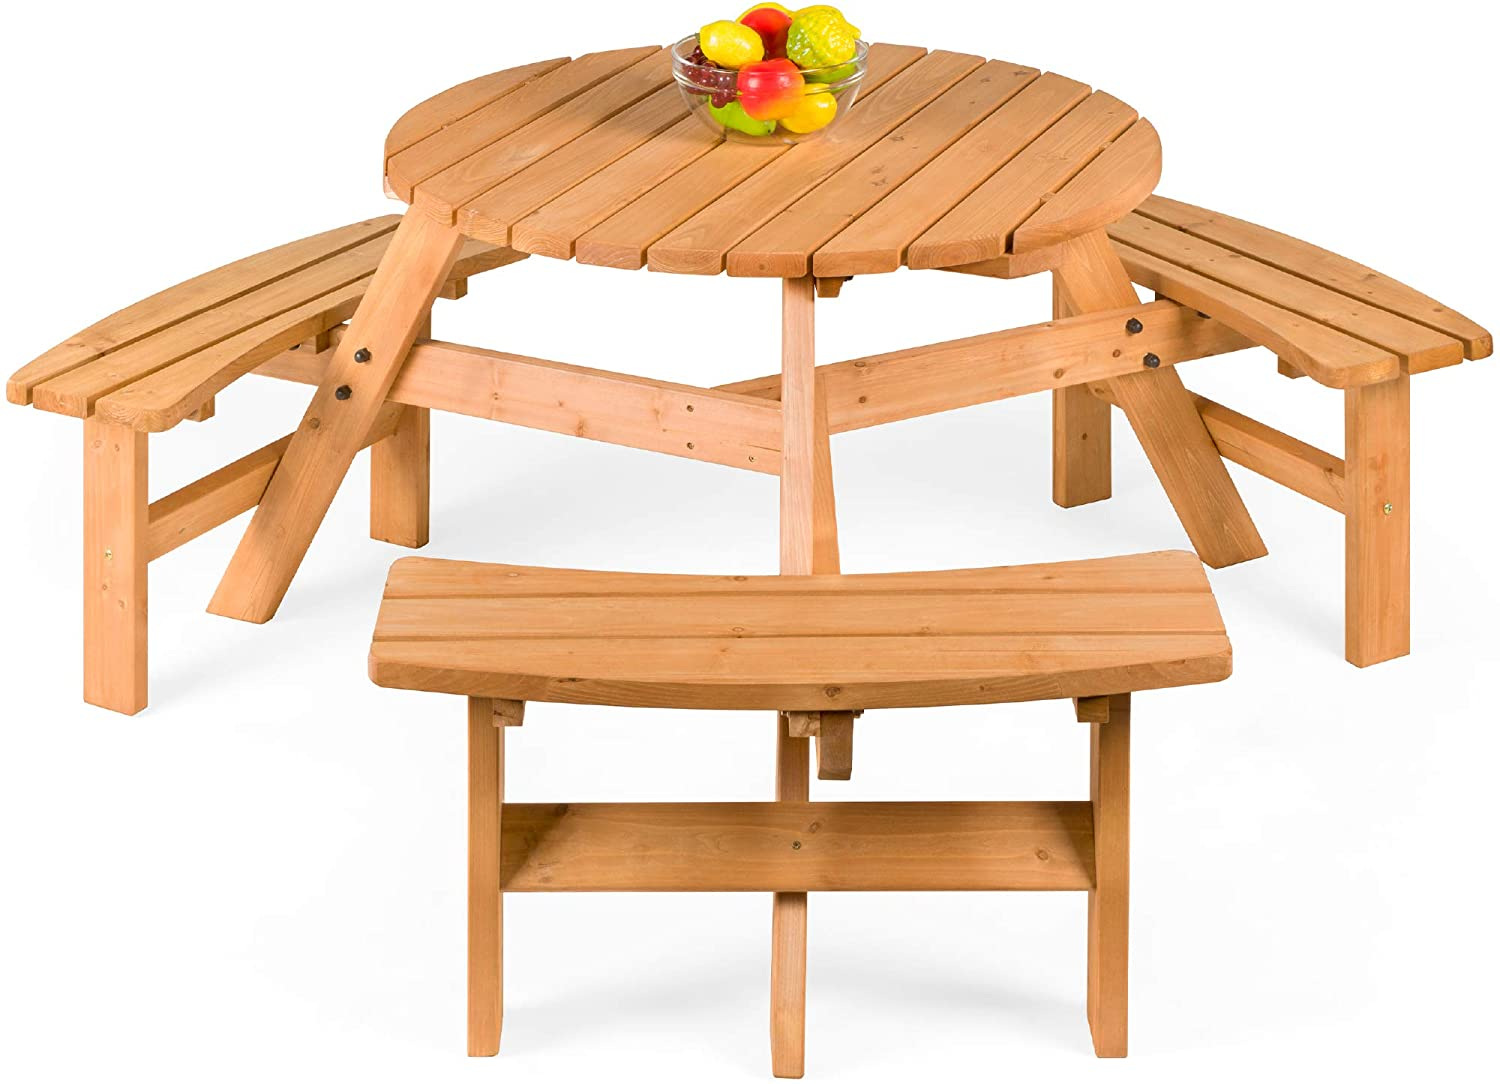 Best Outdoor Wooden Picnic Tables